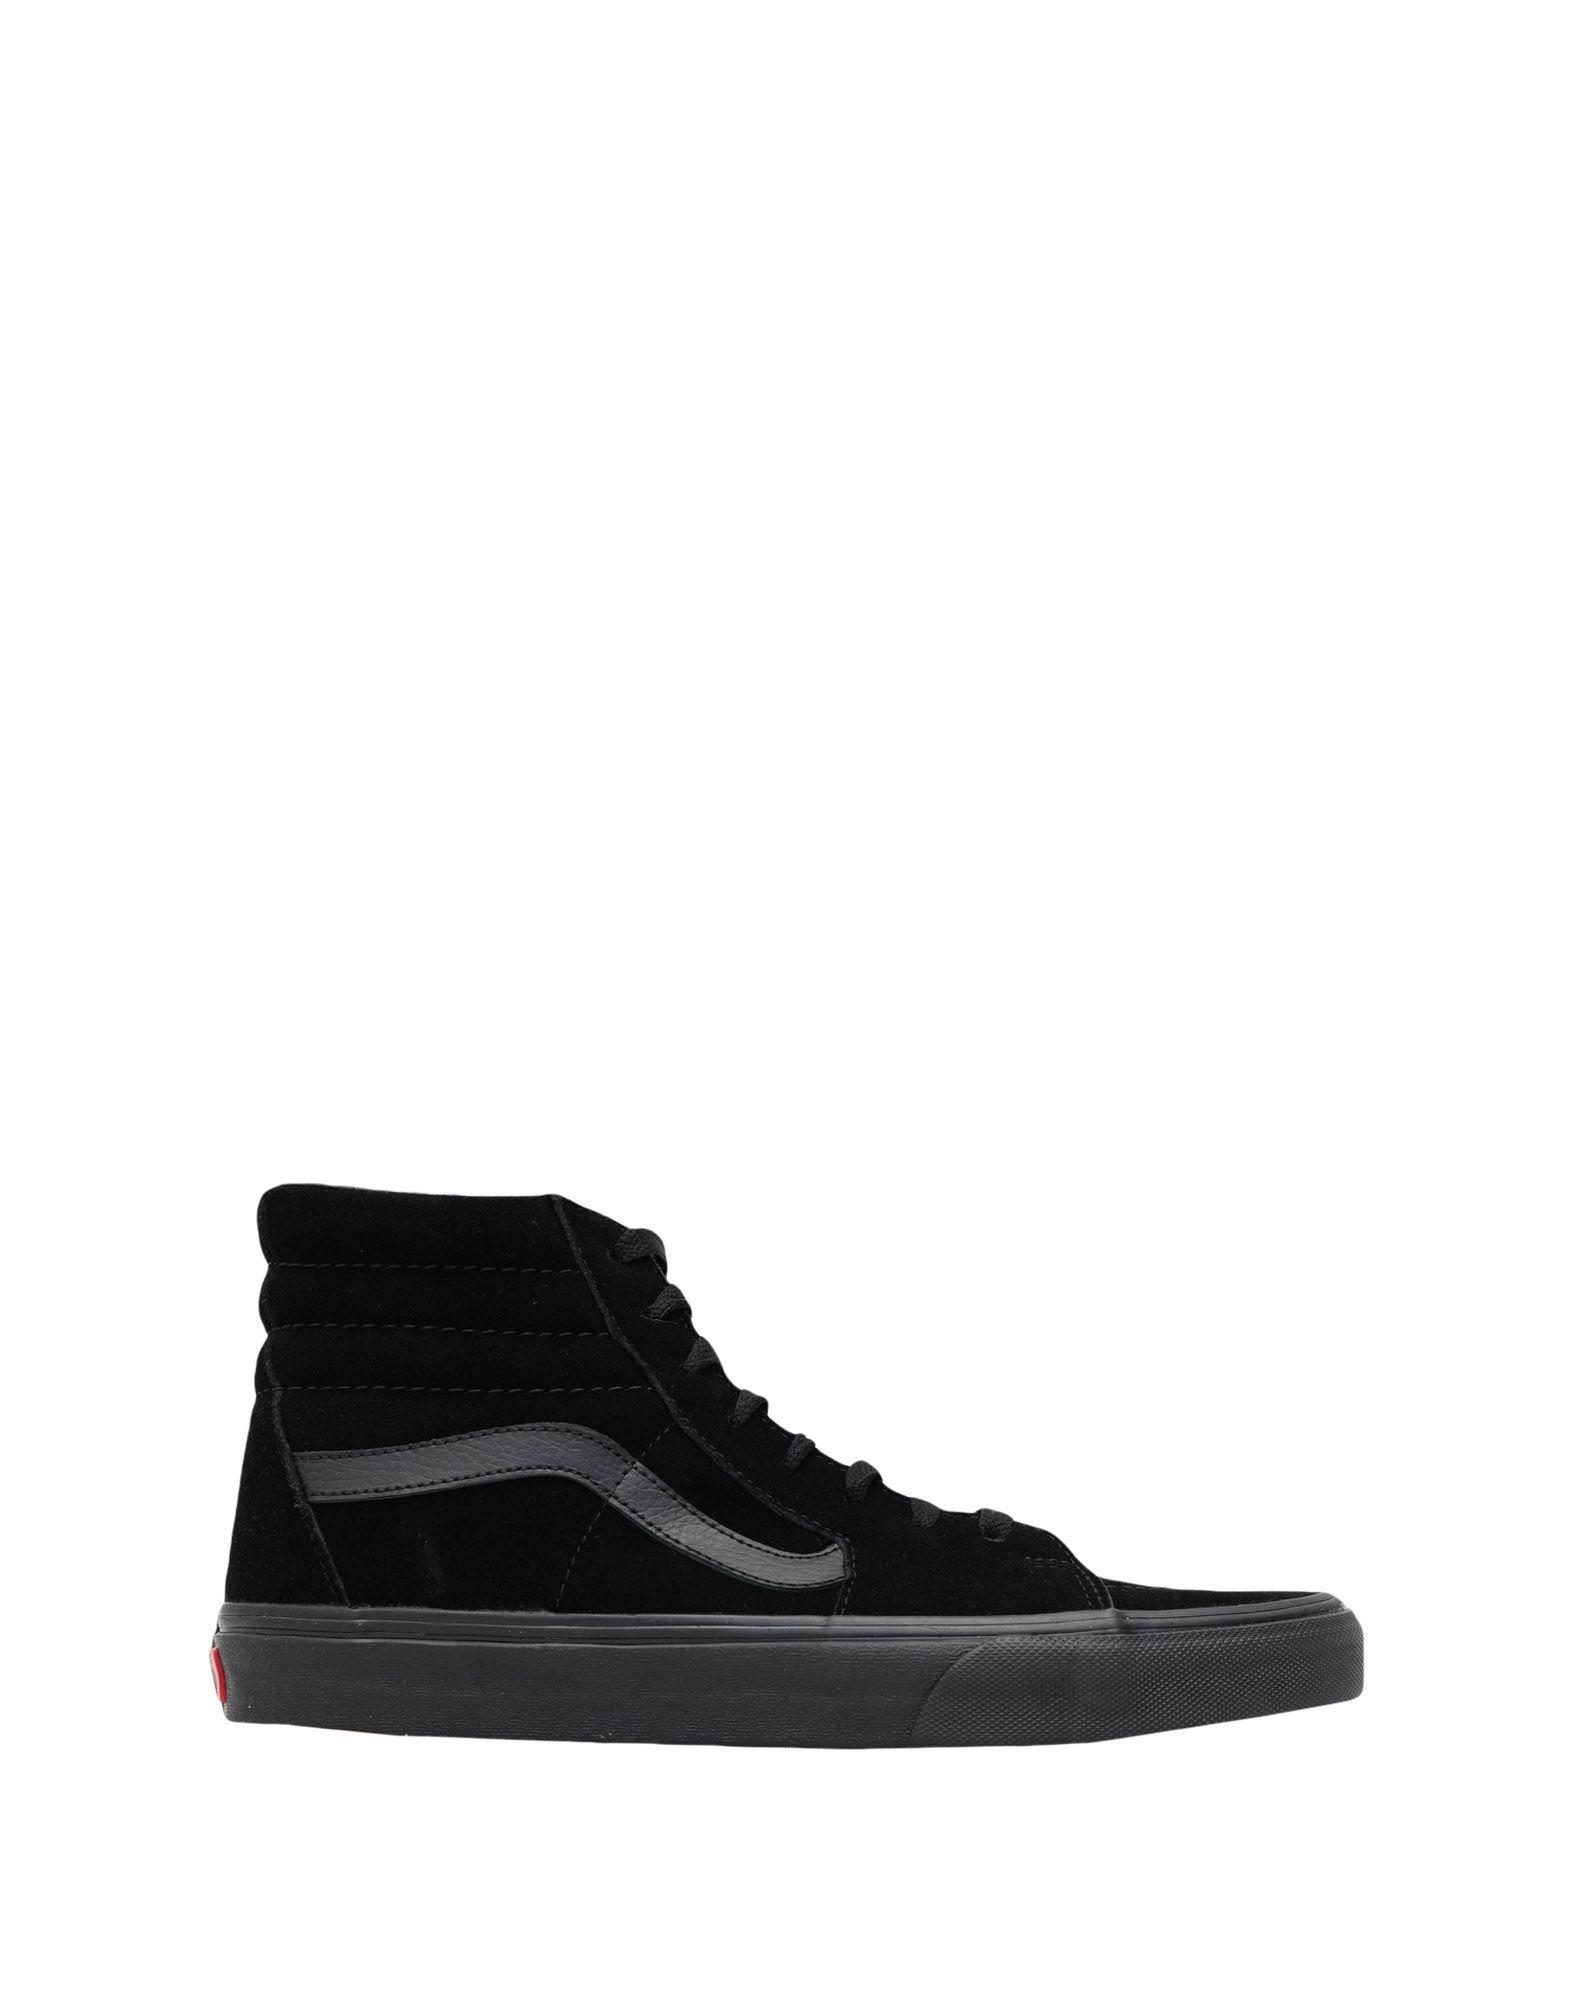 64066841fc21f3 Lyst - Vans High-tops   Sneakers in Black for Men